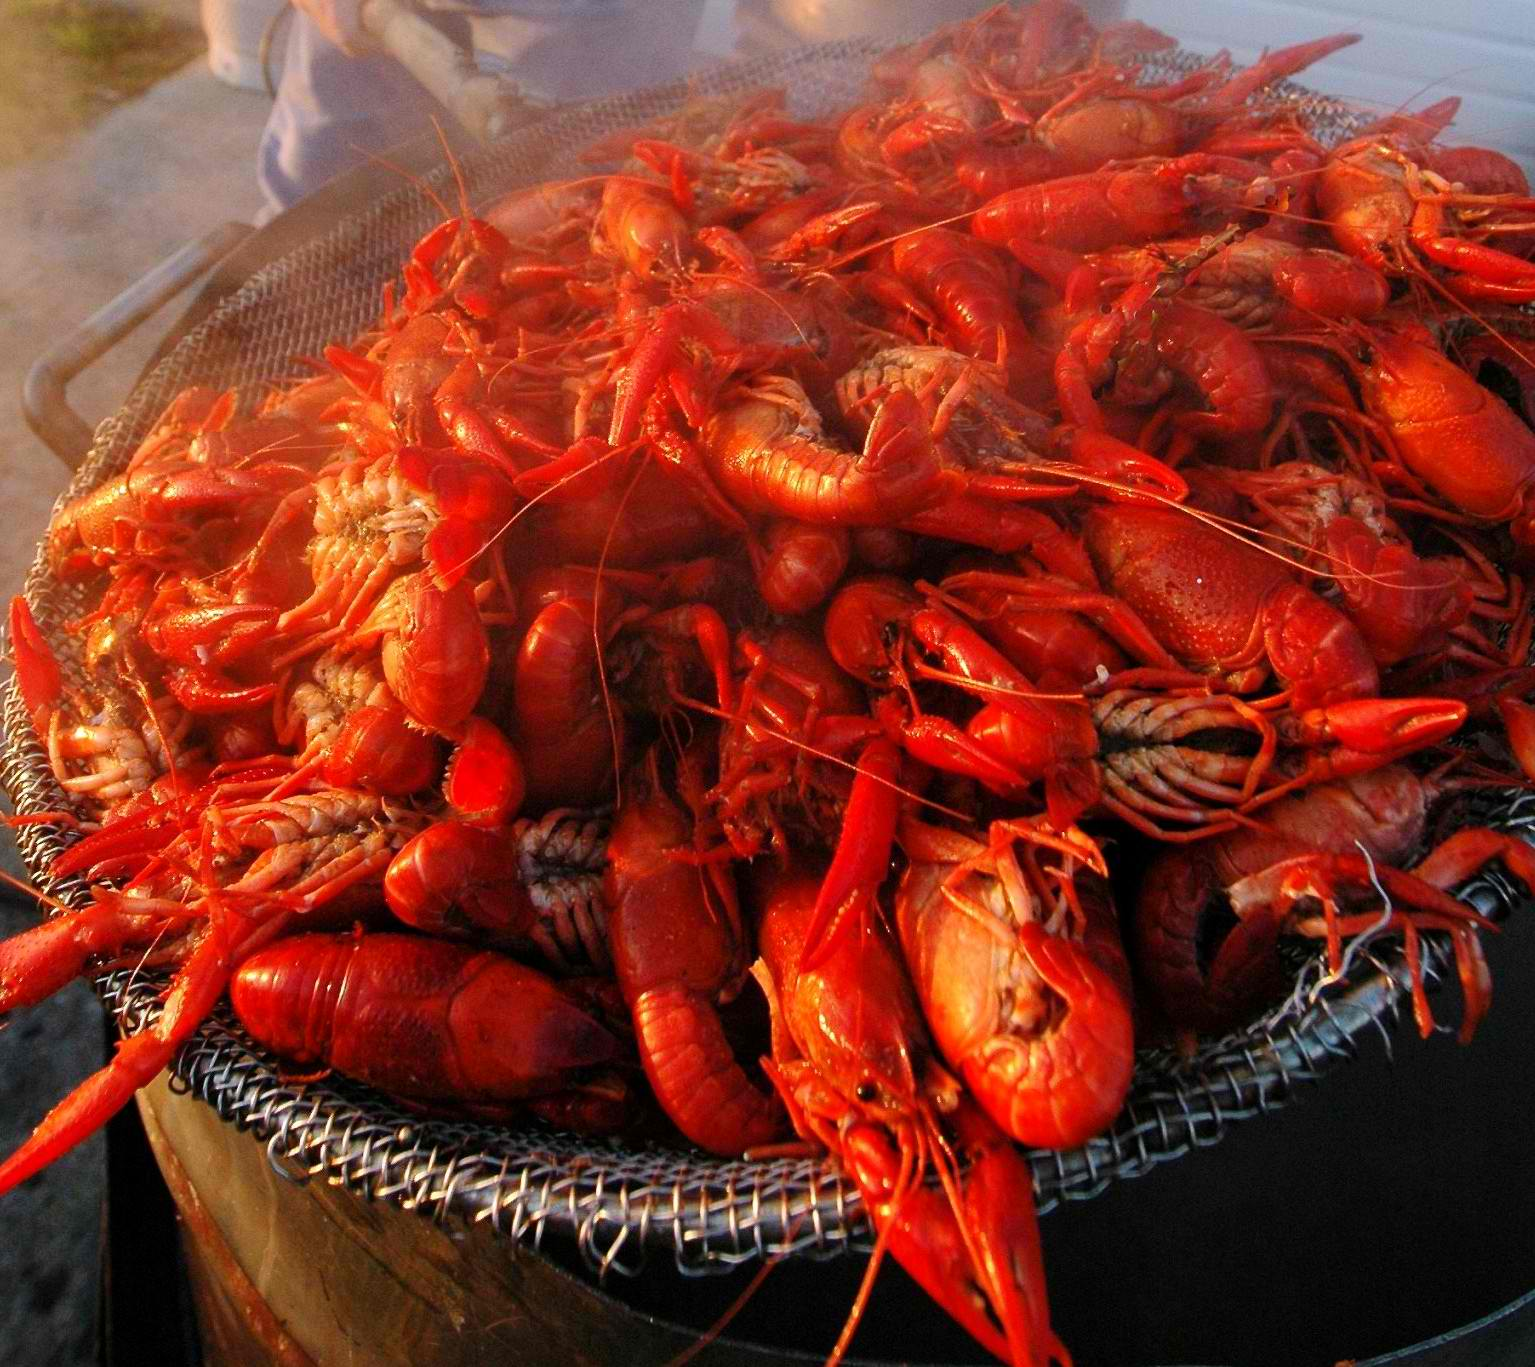 #13: Have A Crawfish Boil